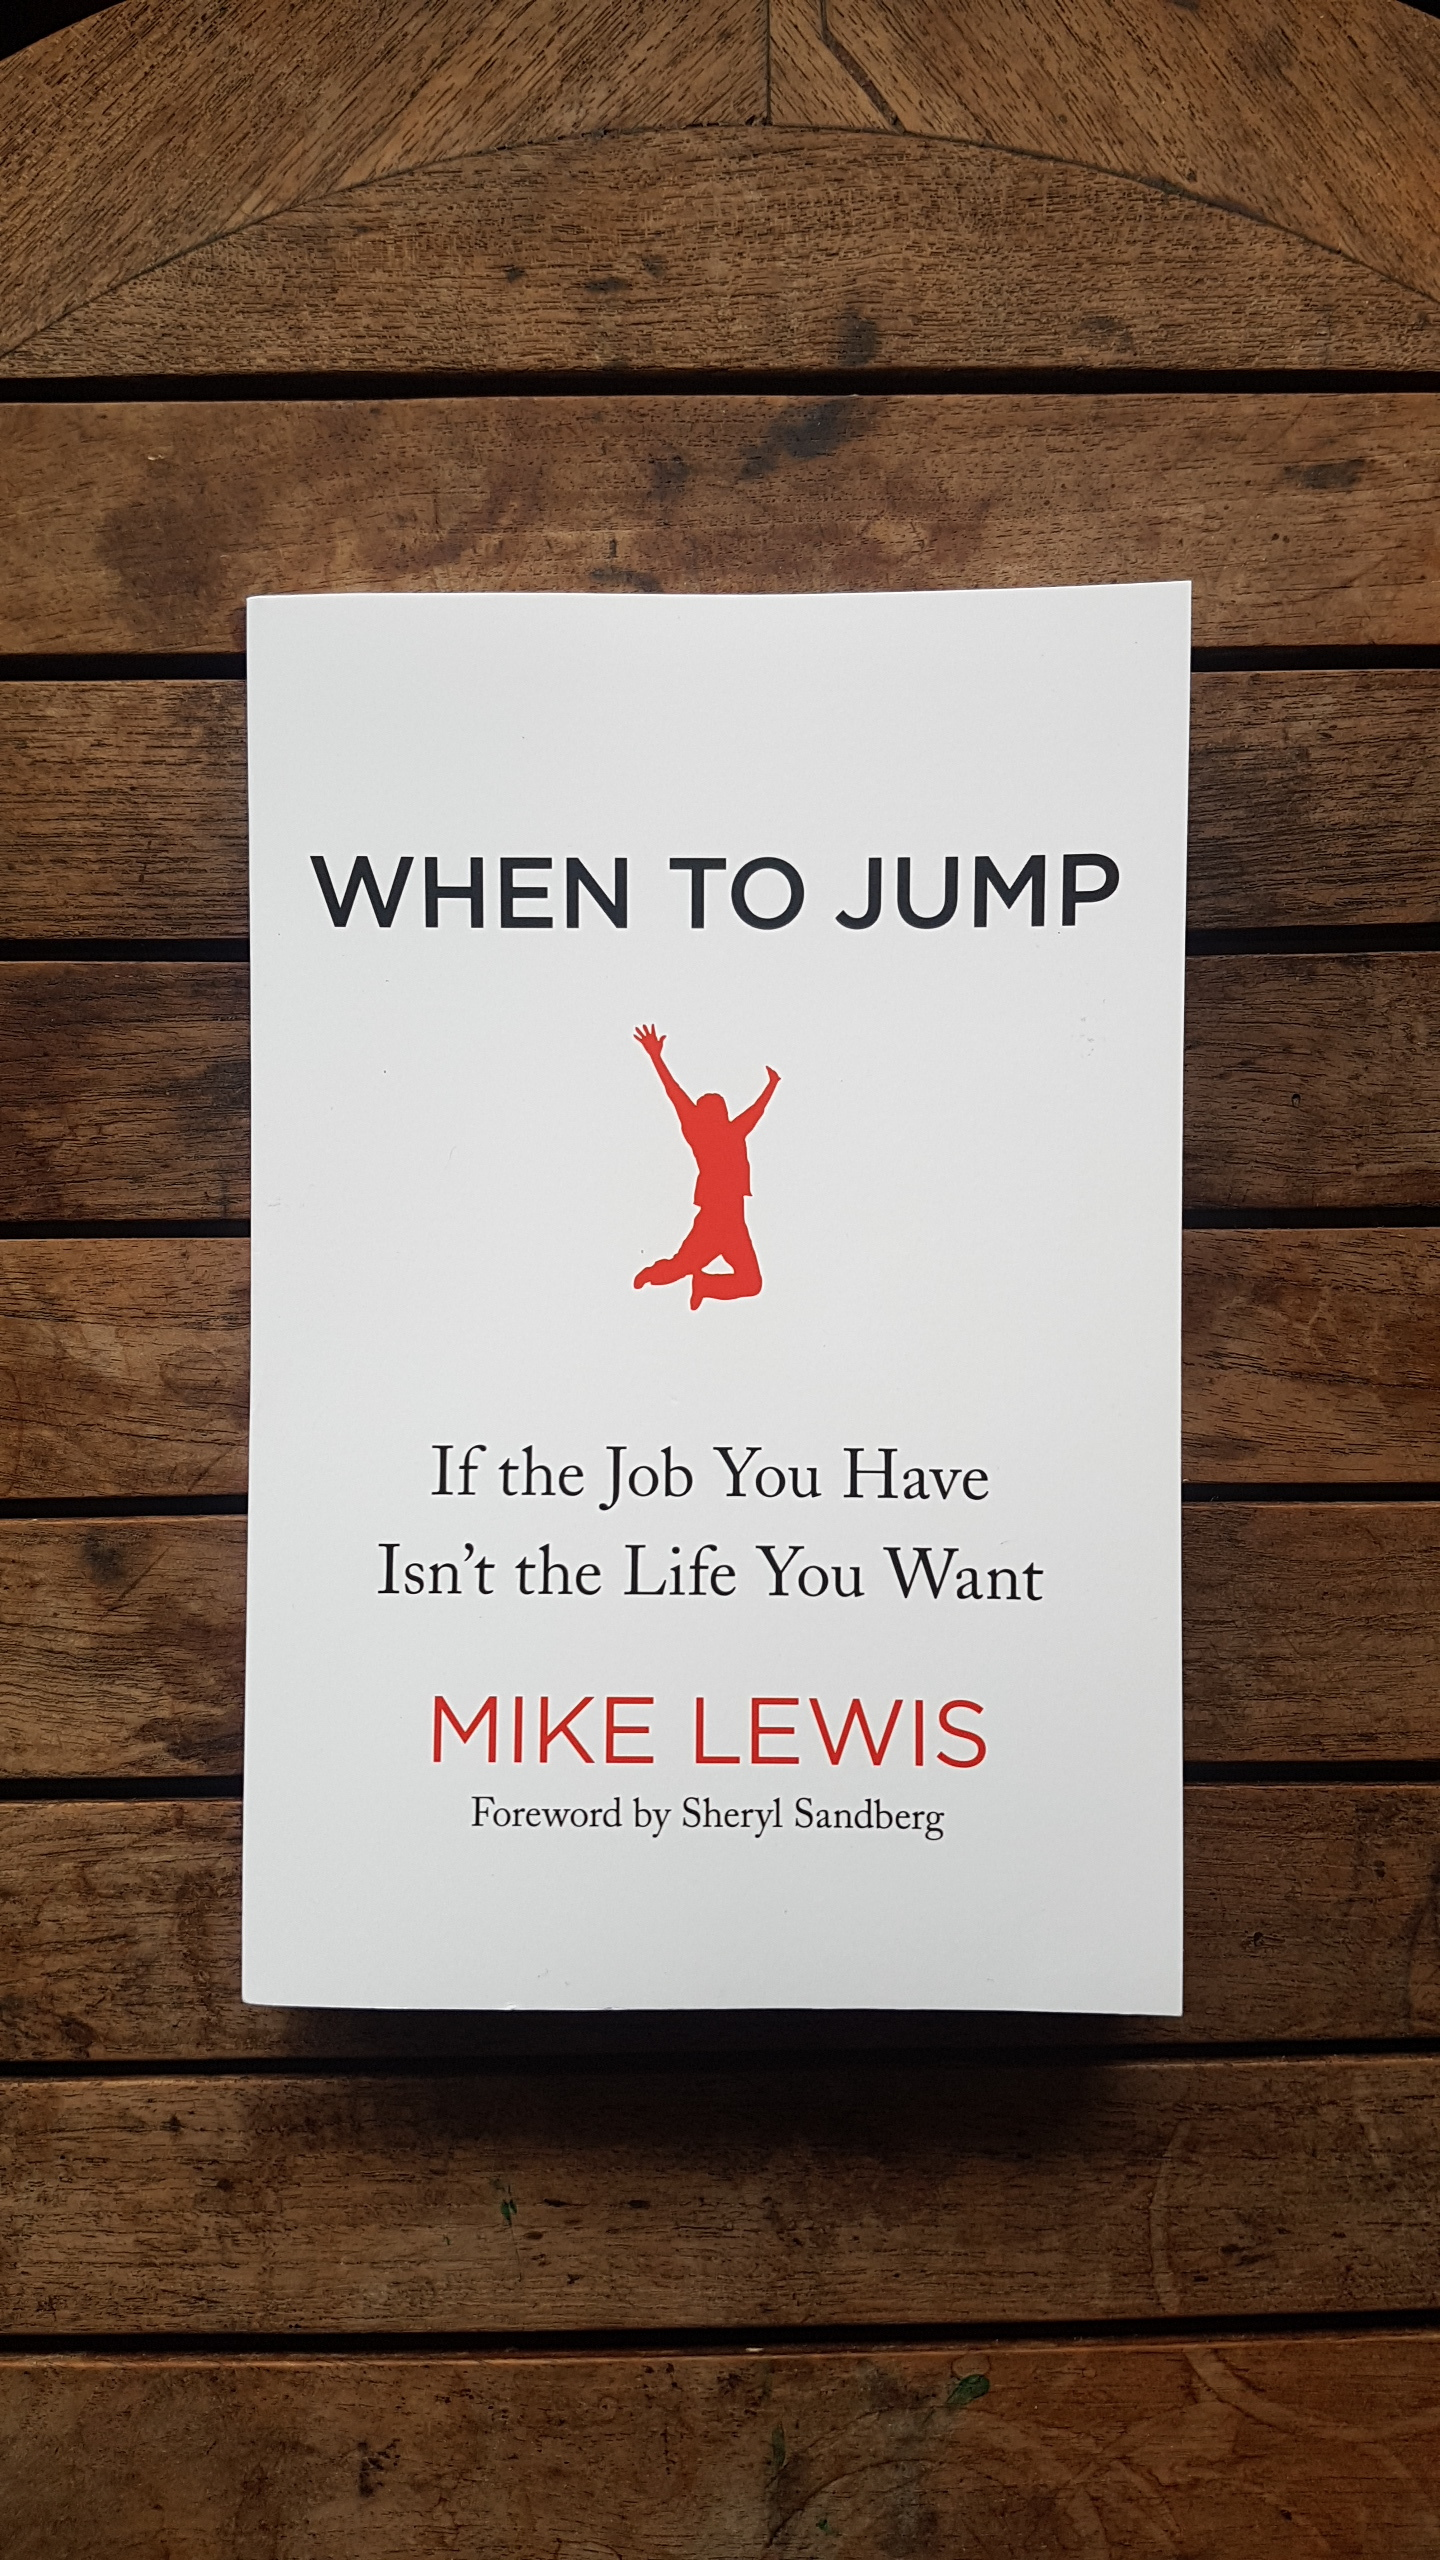 When To Jump: If the Job You Have Isn't the Life You Want  by Mike Lewis